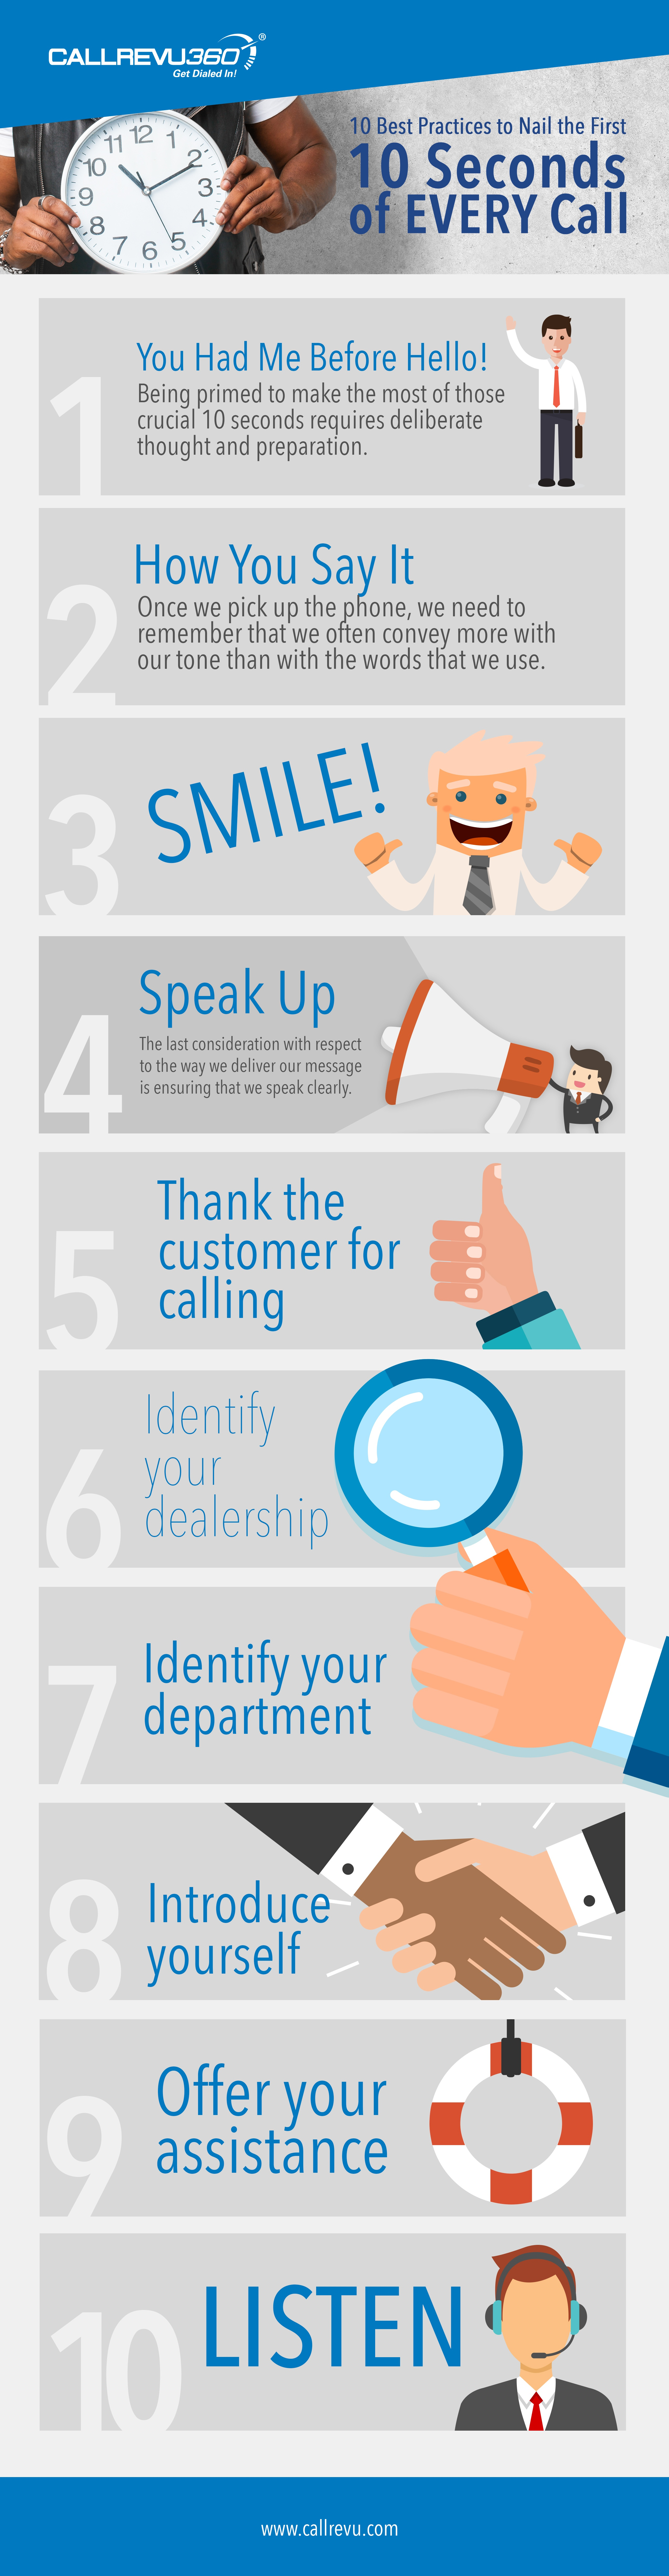 Infographic- Nail the First 10 Seconds of Every Call